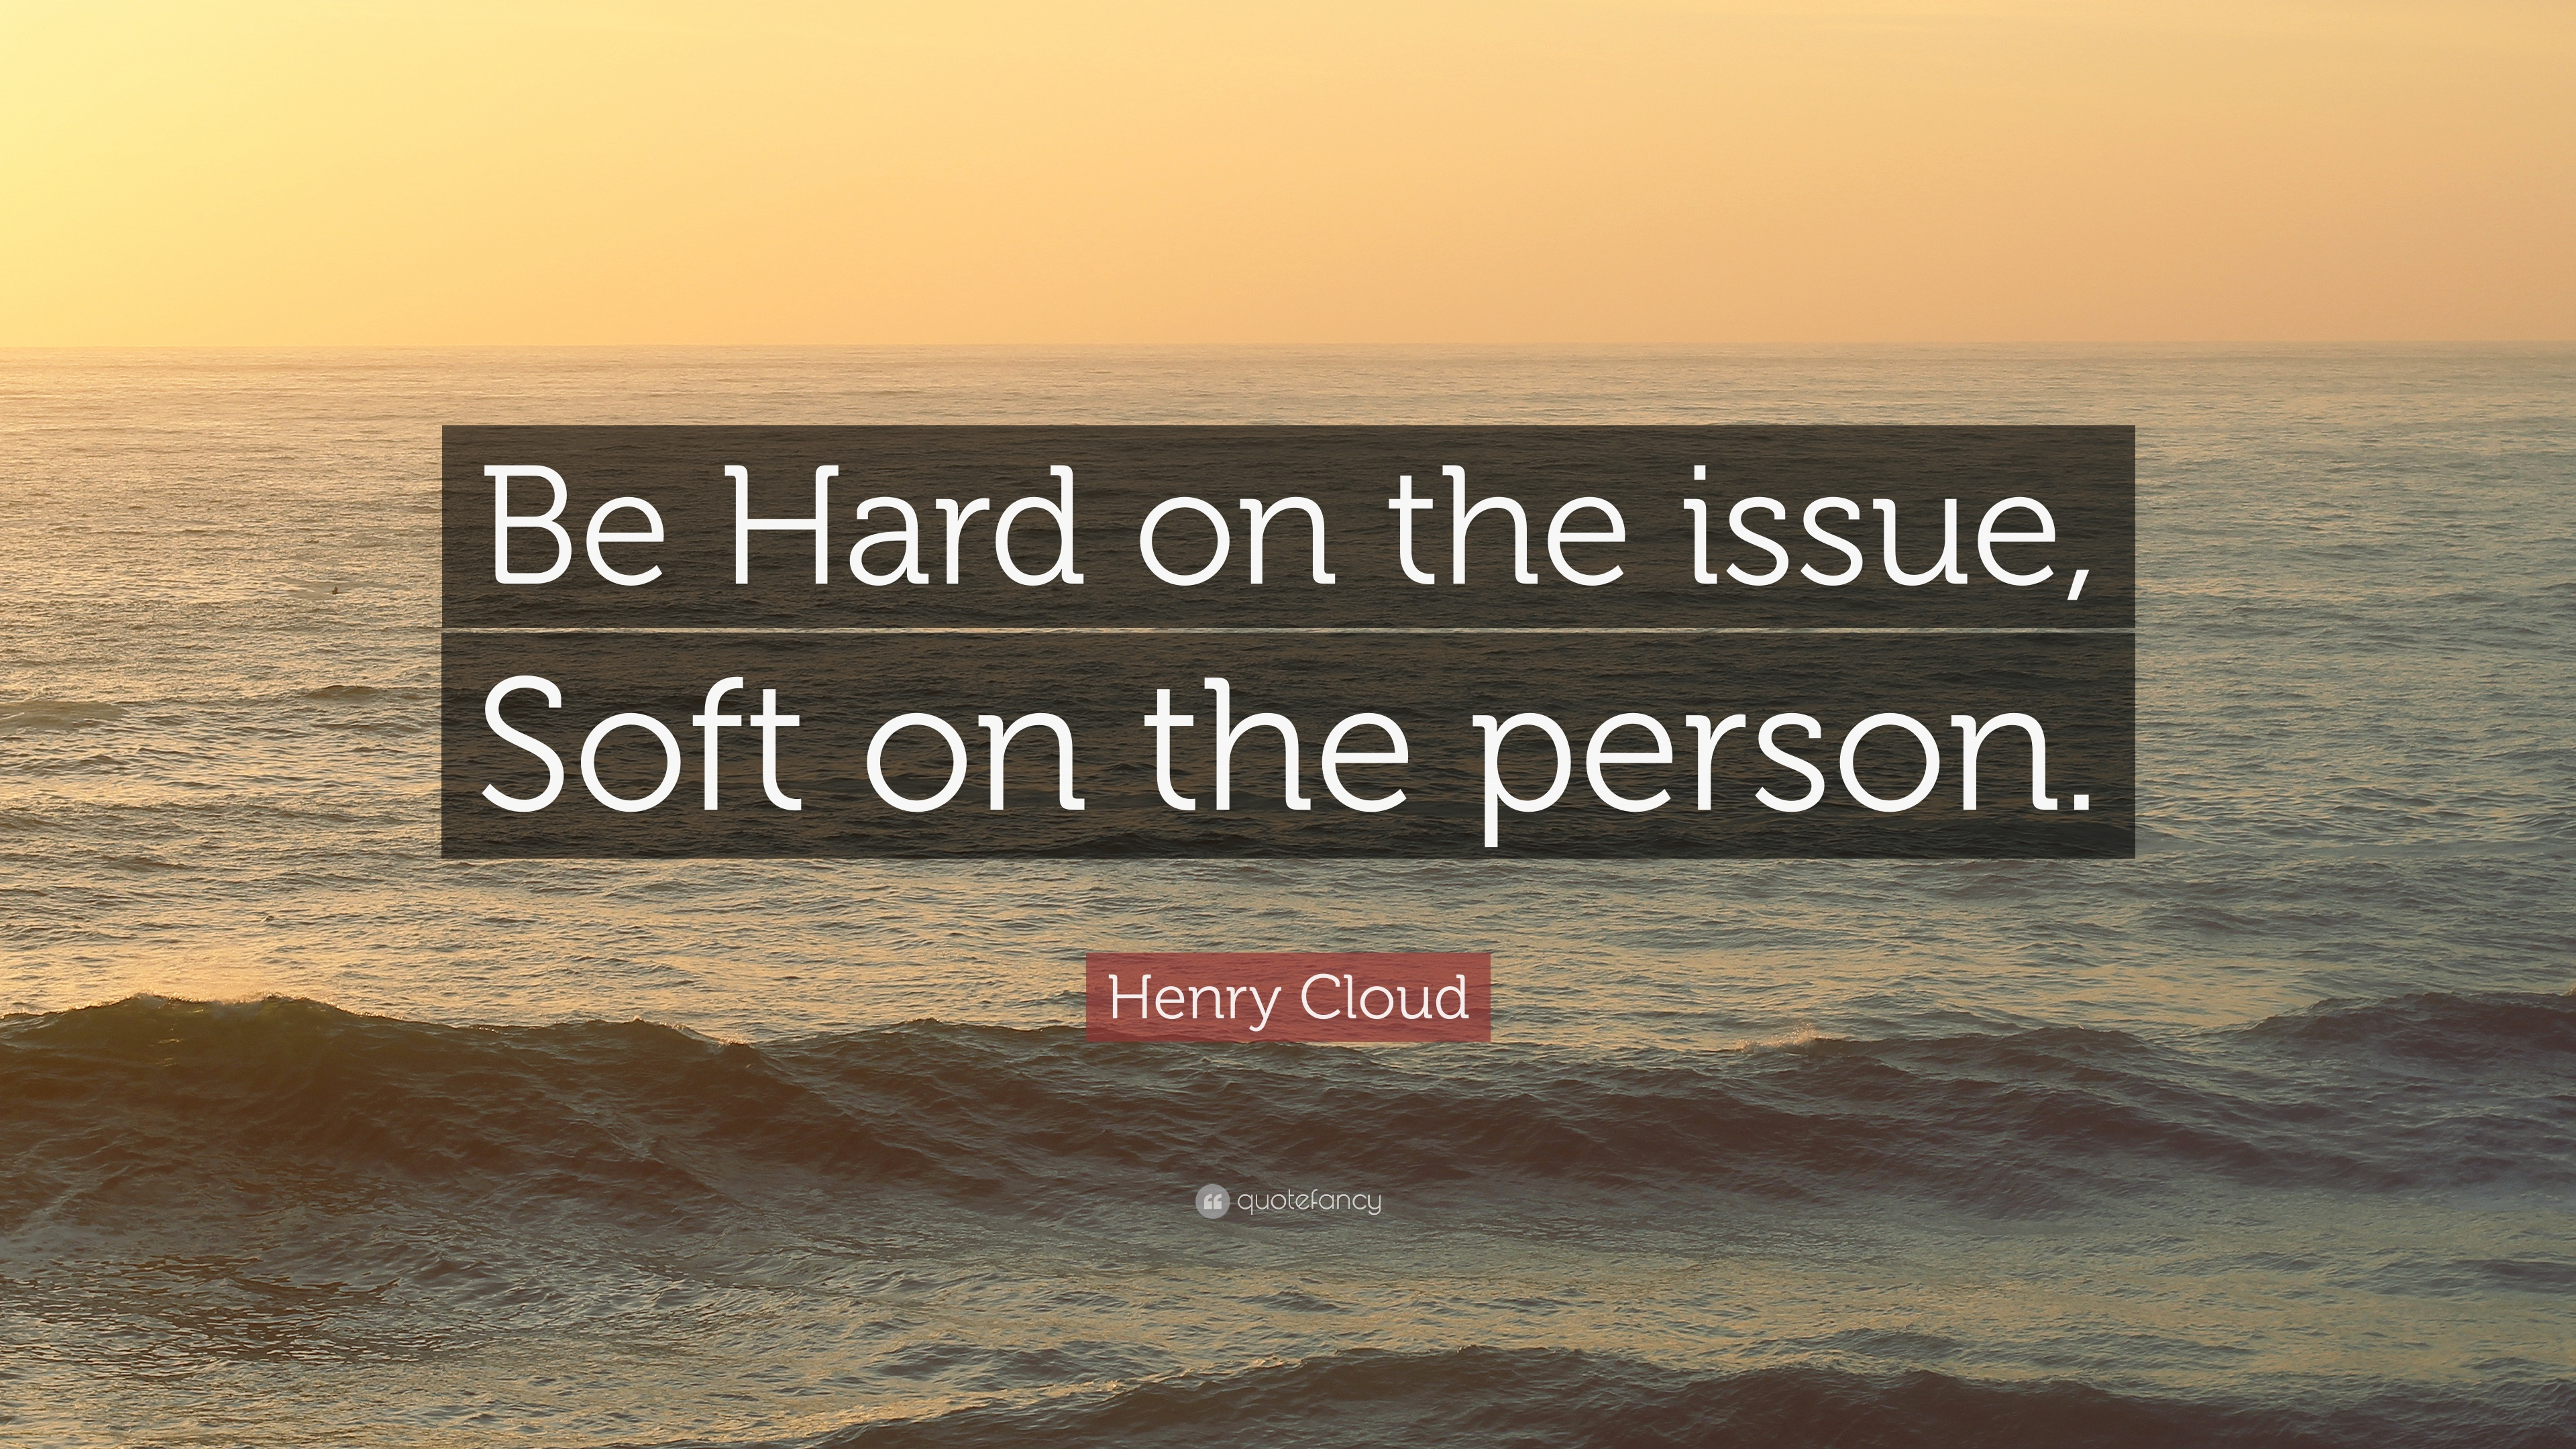 Cloud Quotes Classy Henry Cloud Quotes 79 Wallpapers  Quotefancy